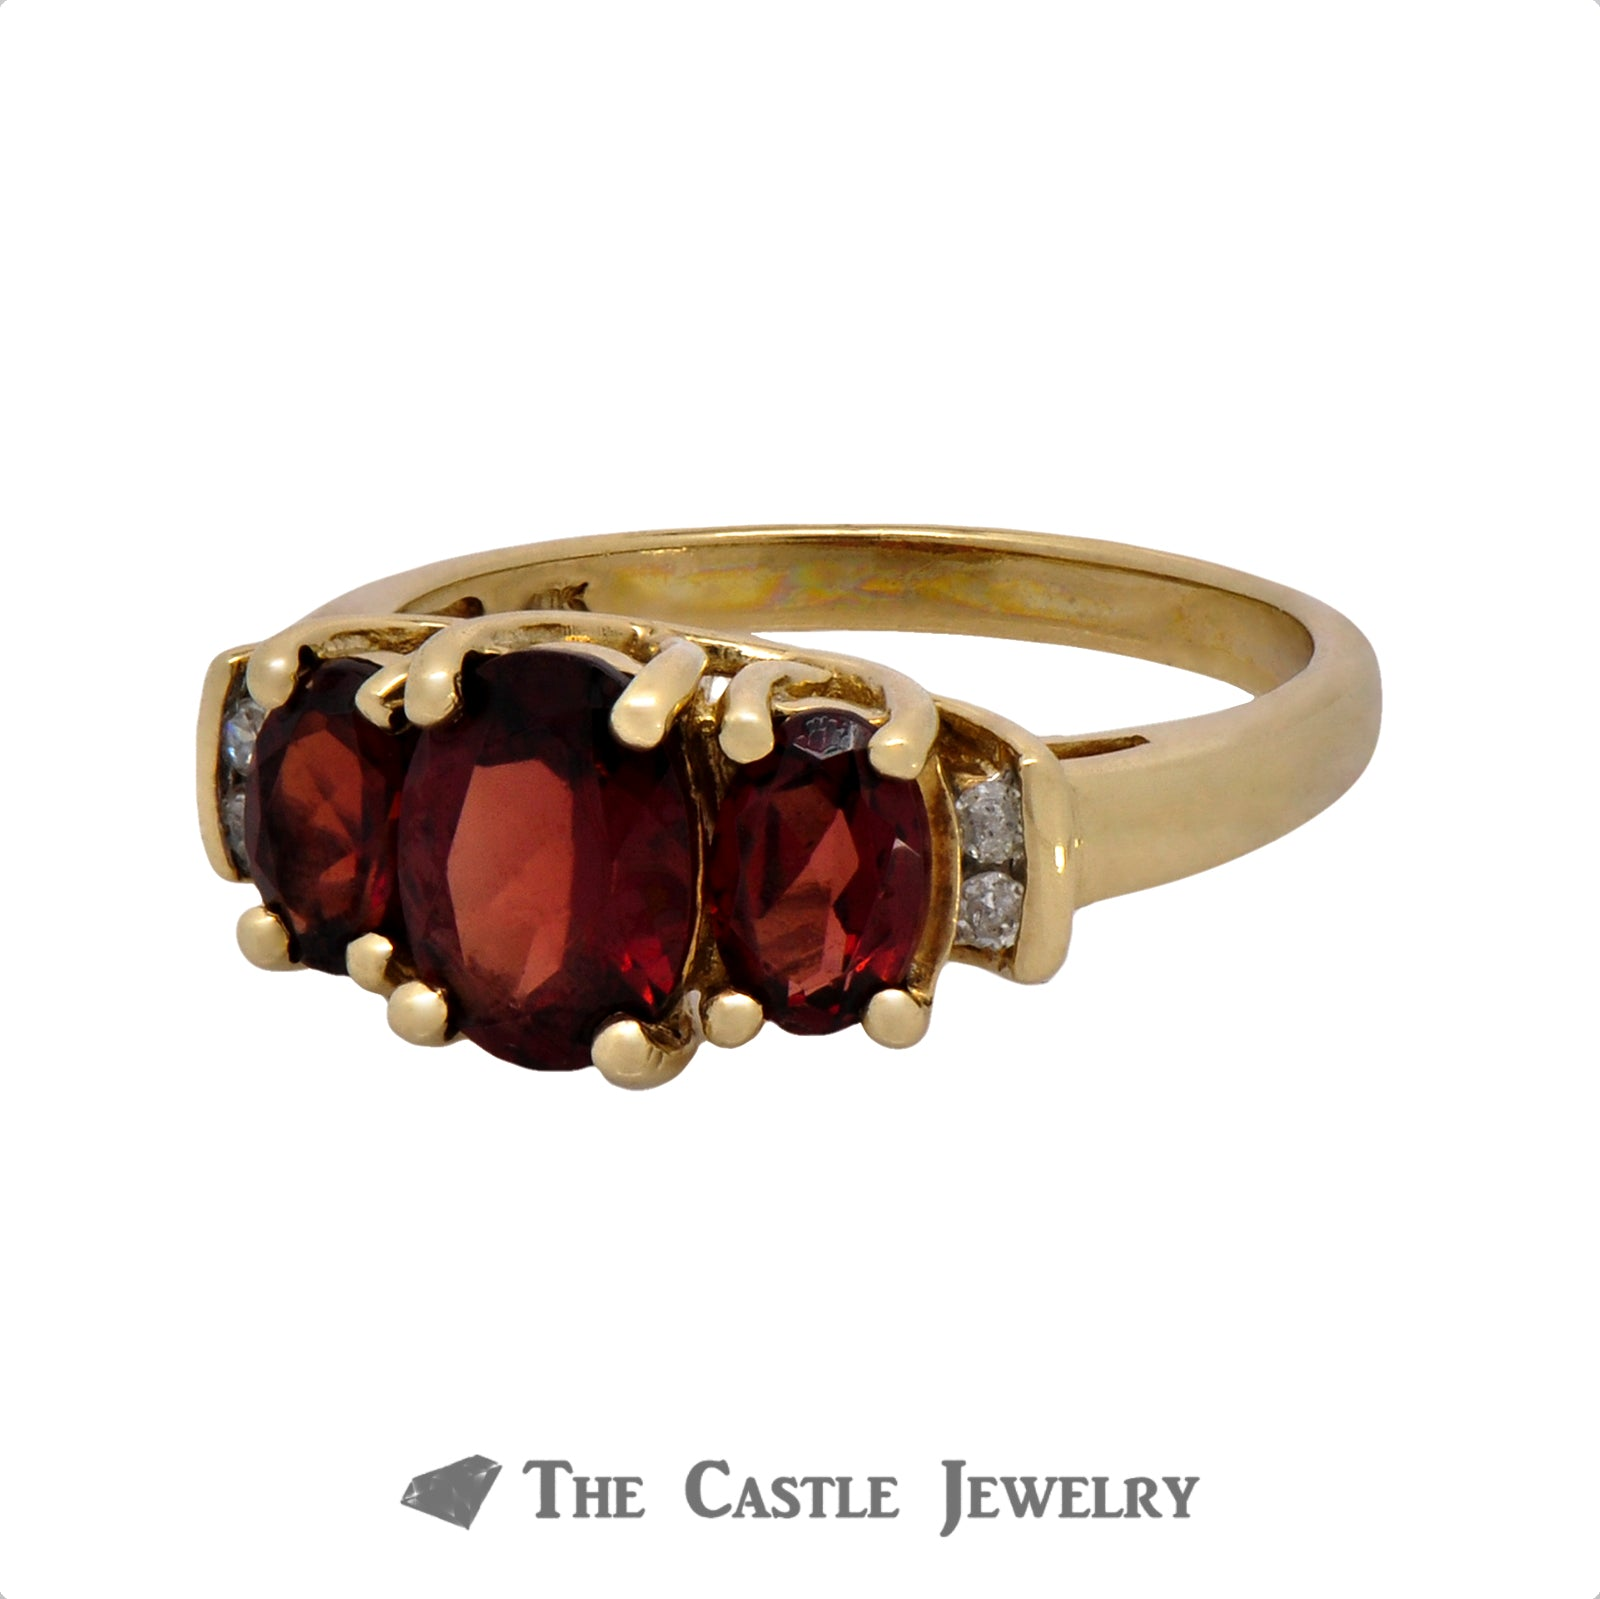 Triple Oval Garnet Ring with Diamond Accents in 10k Yellow Gold-2